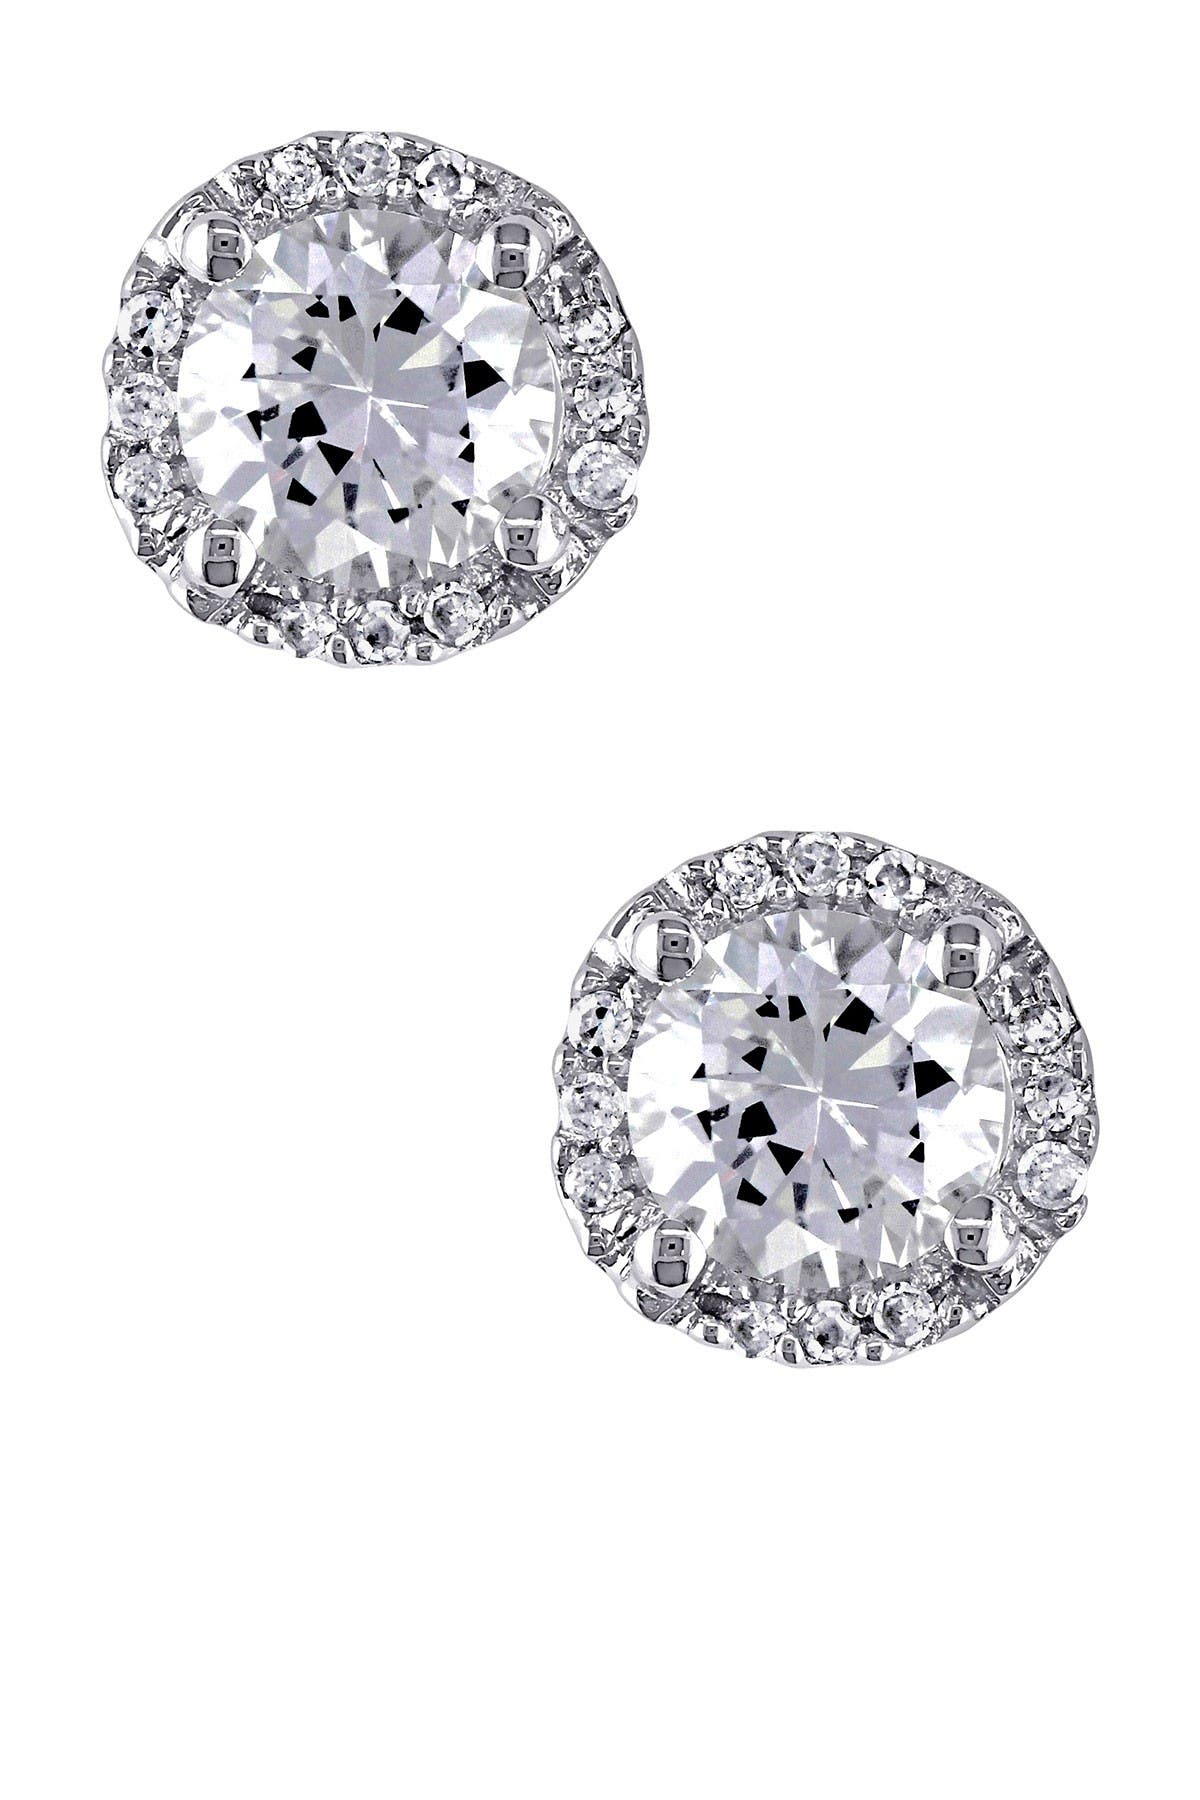 Image of Delmar Sterling Silver Created White Sapphire & Diamond Stud Earrings - 0.07 ctw